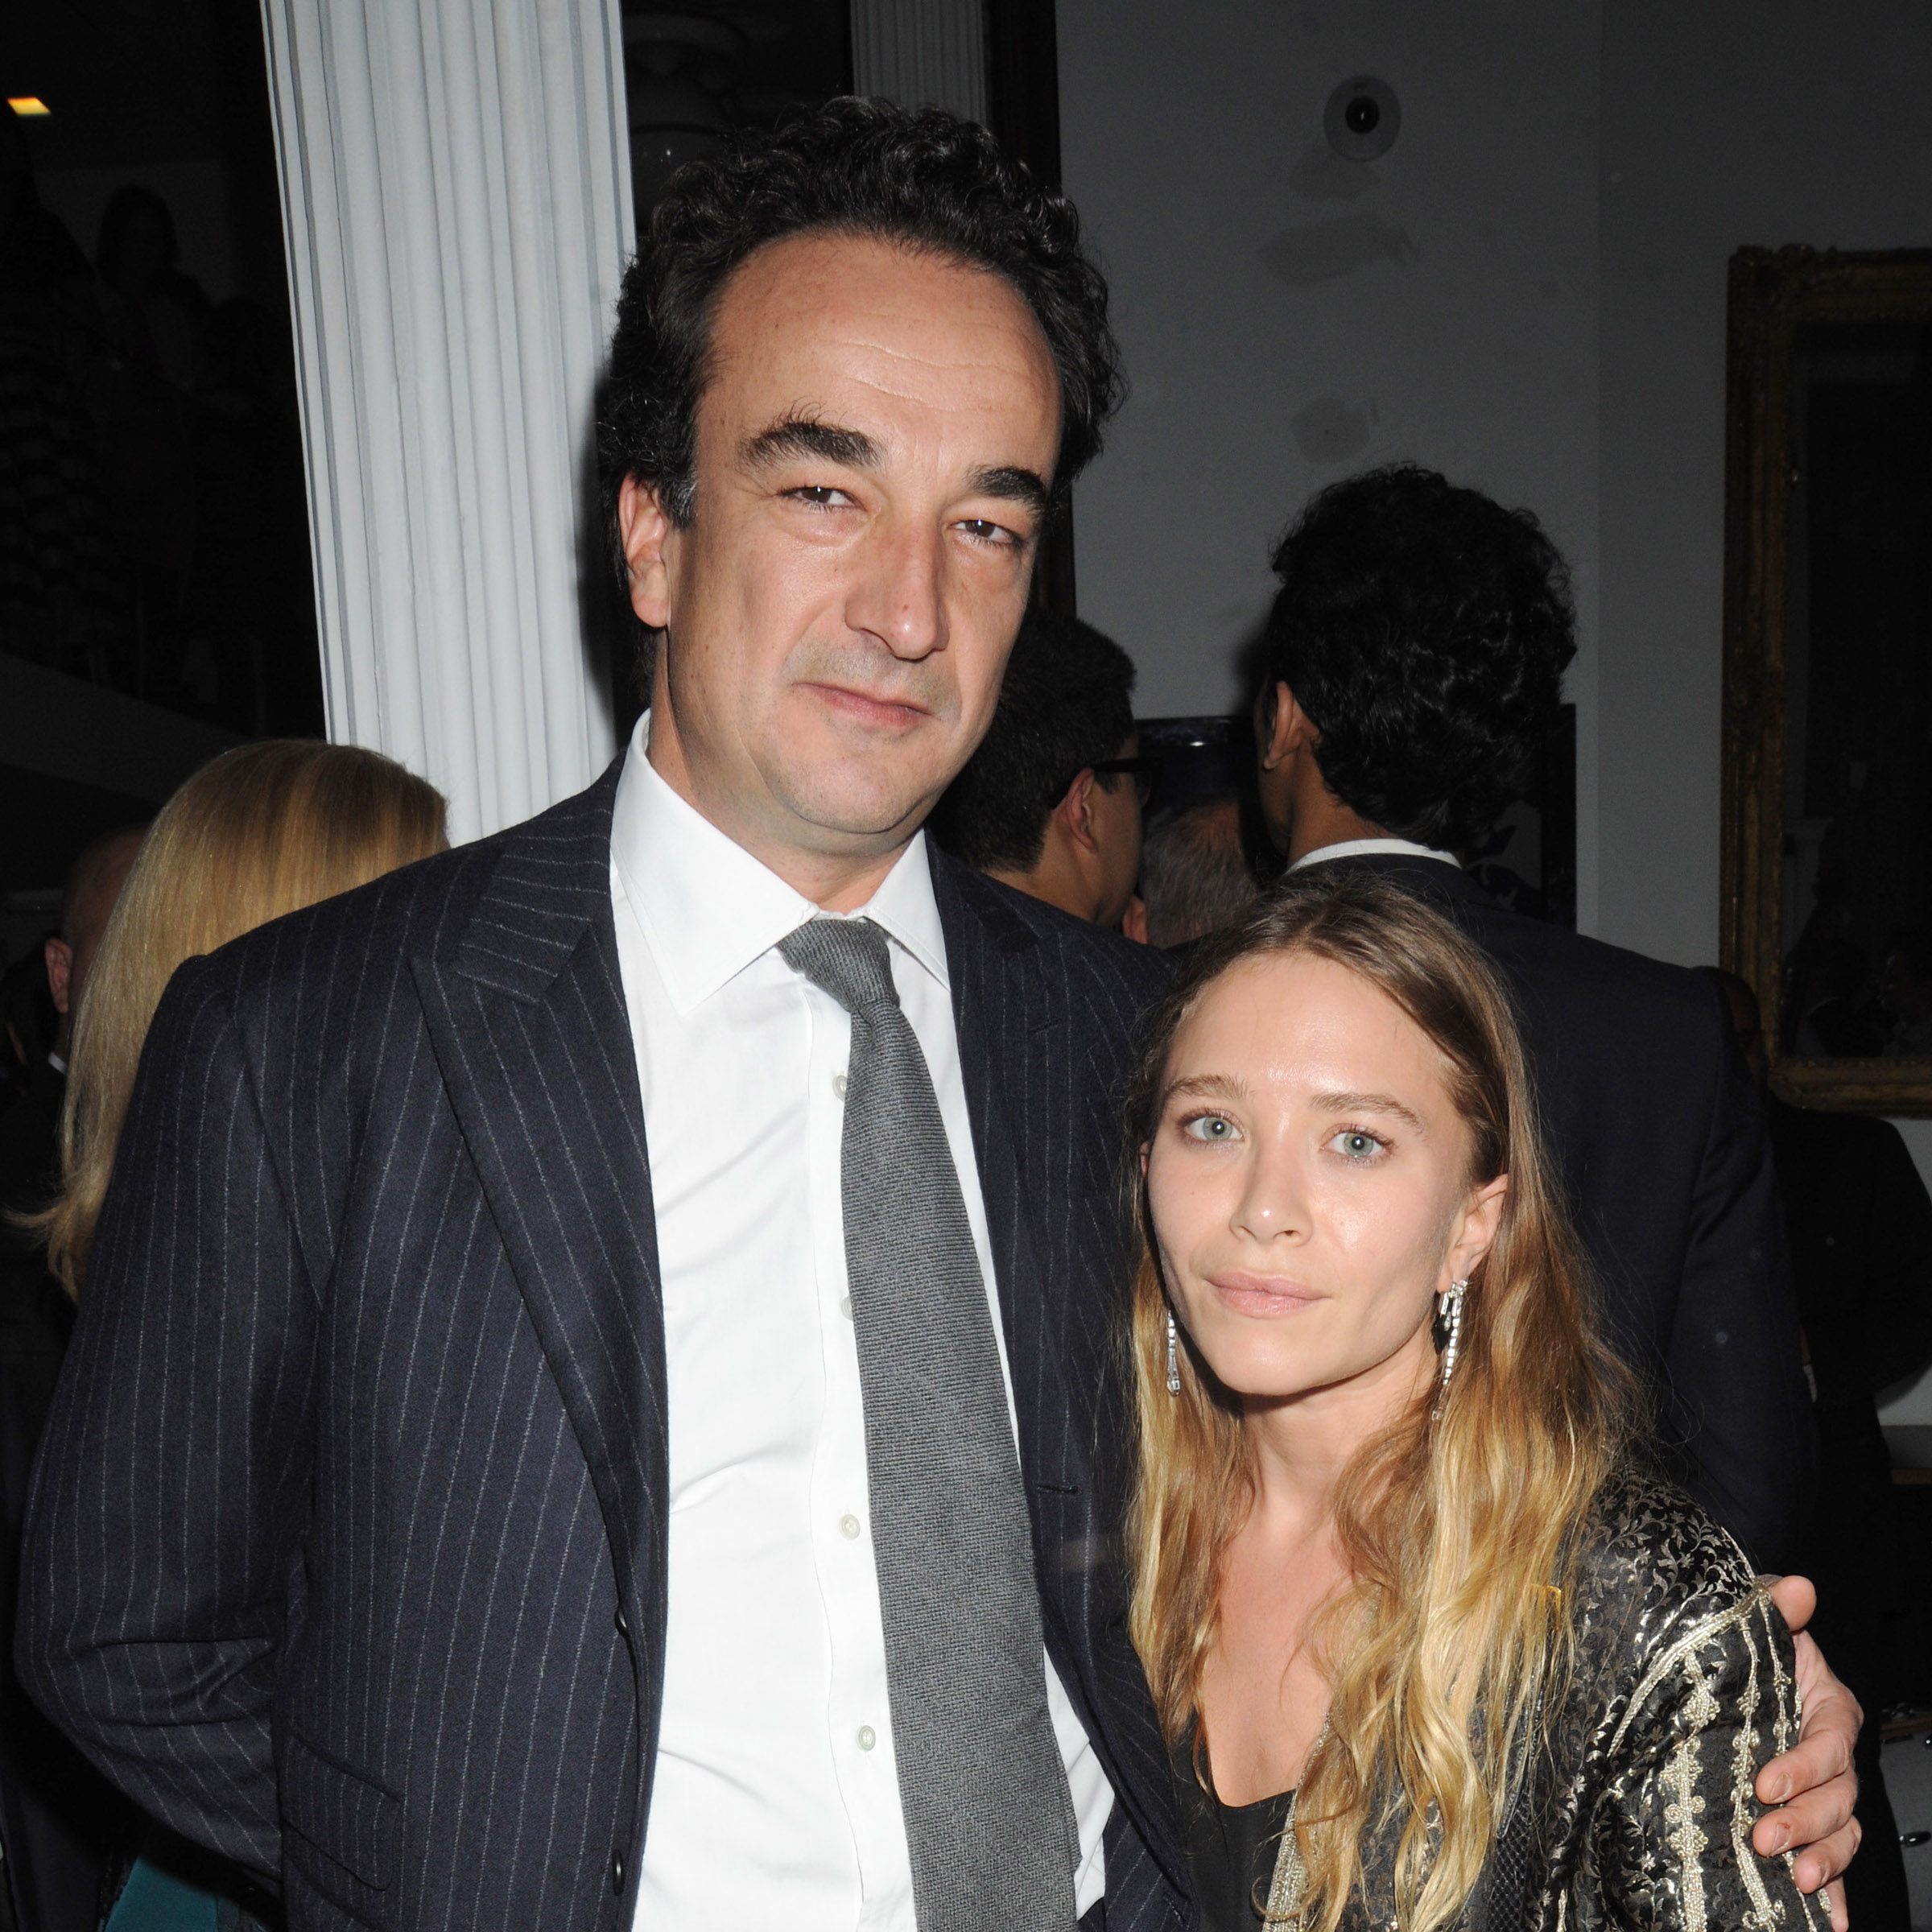 Mary-Kate Olsen's Wedding Is In Summer 2016